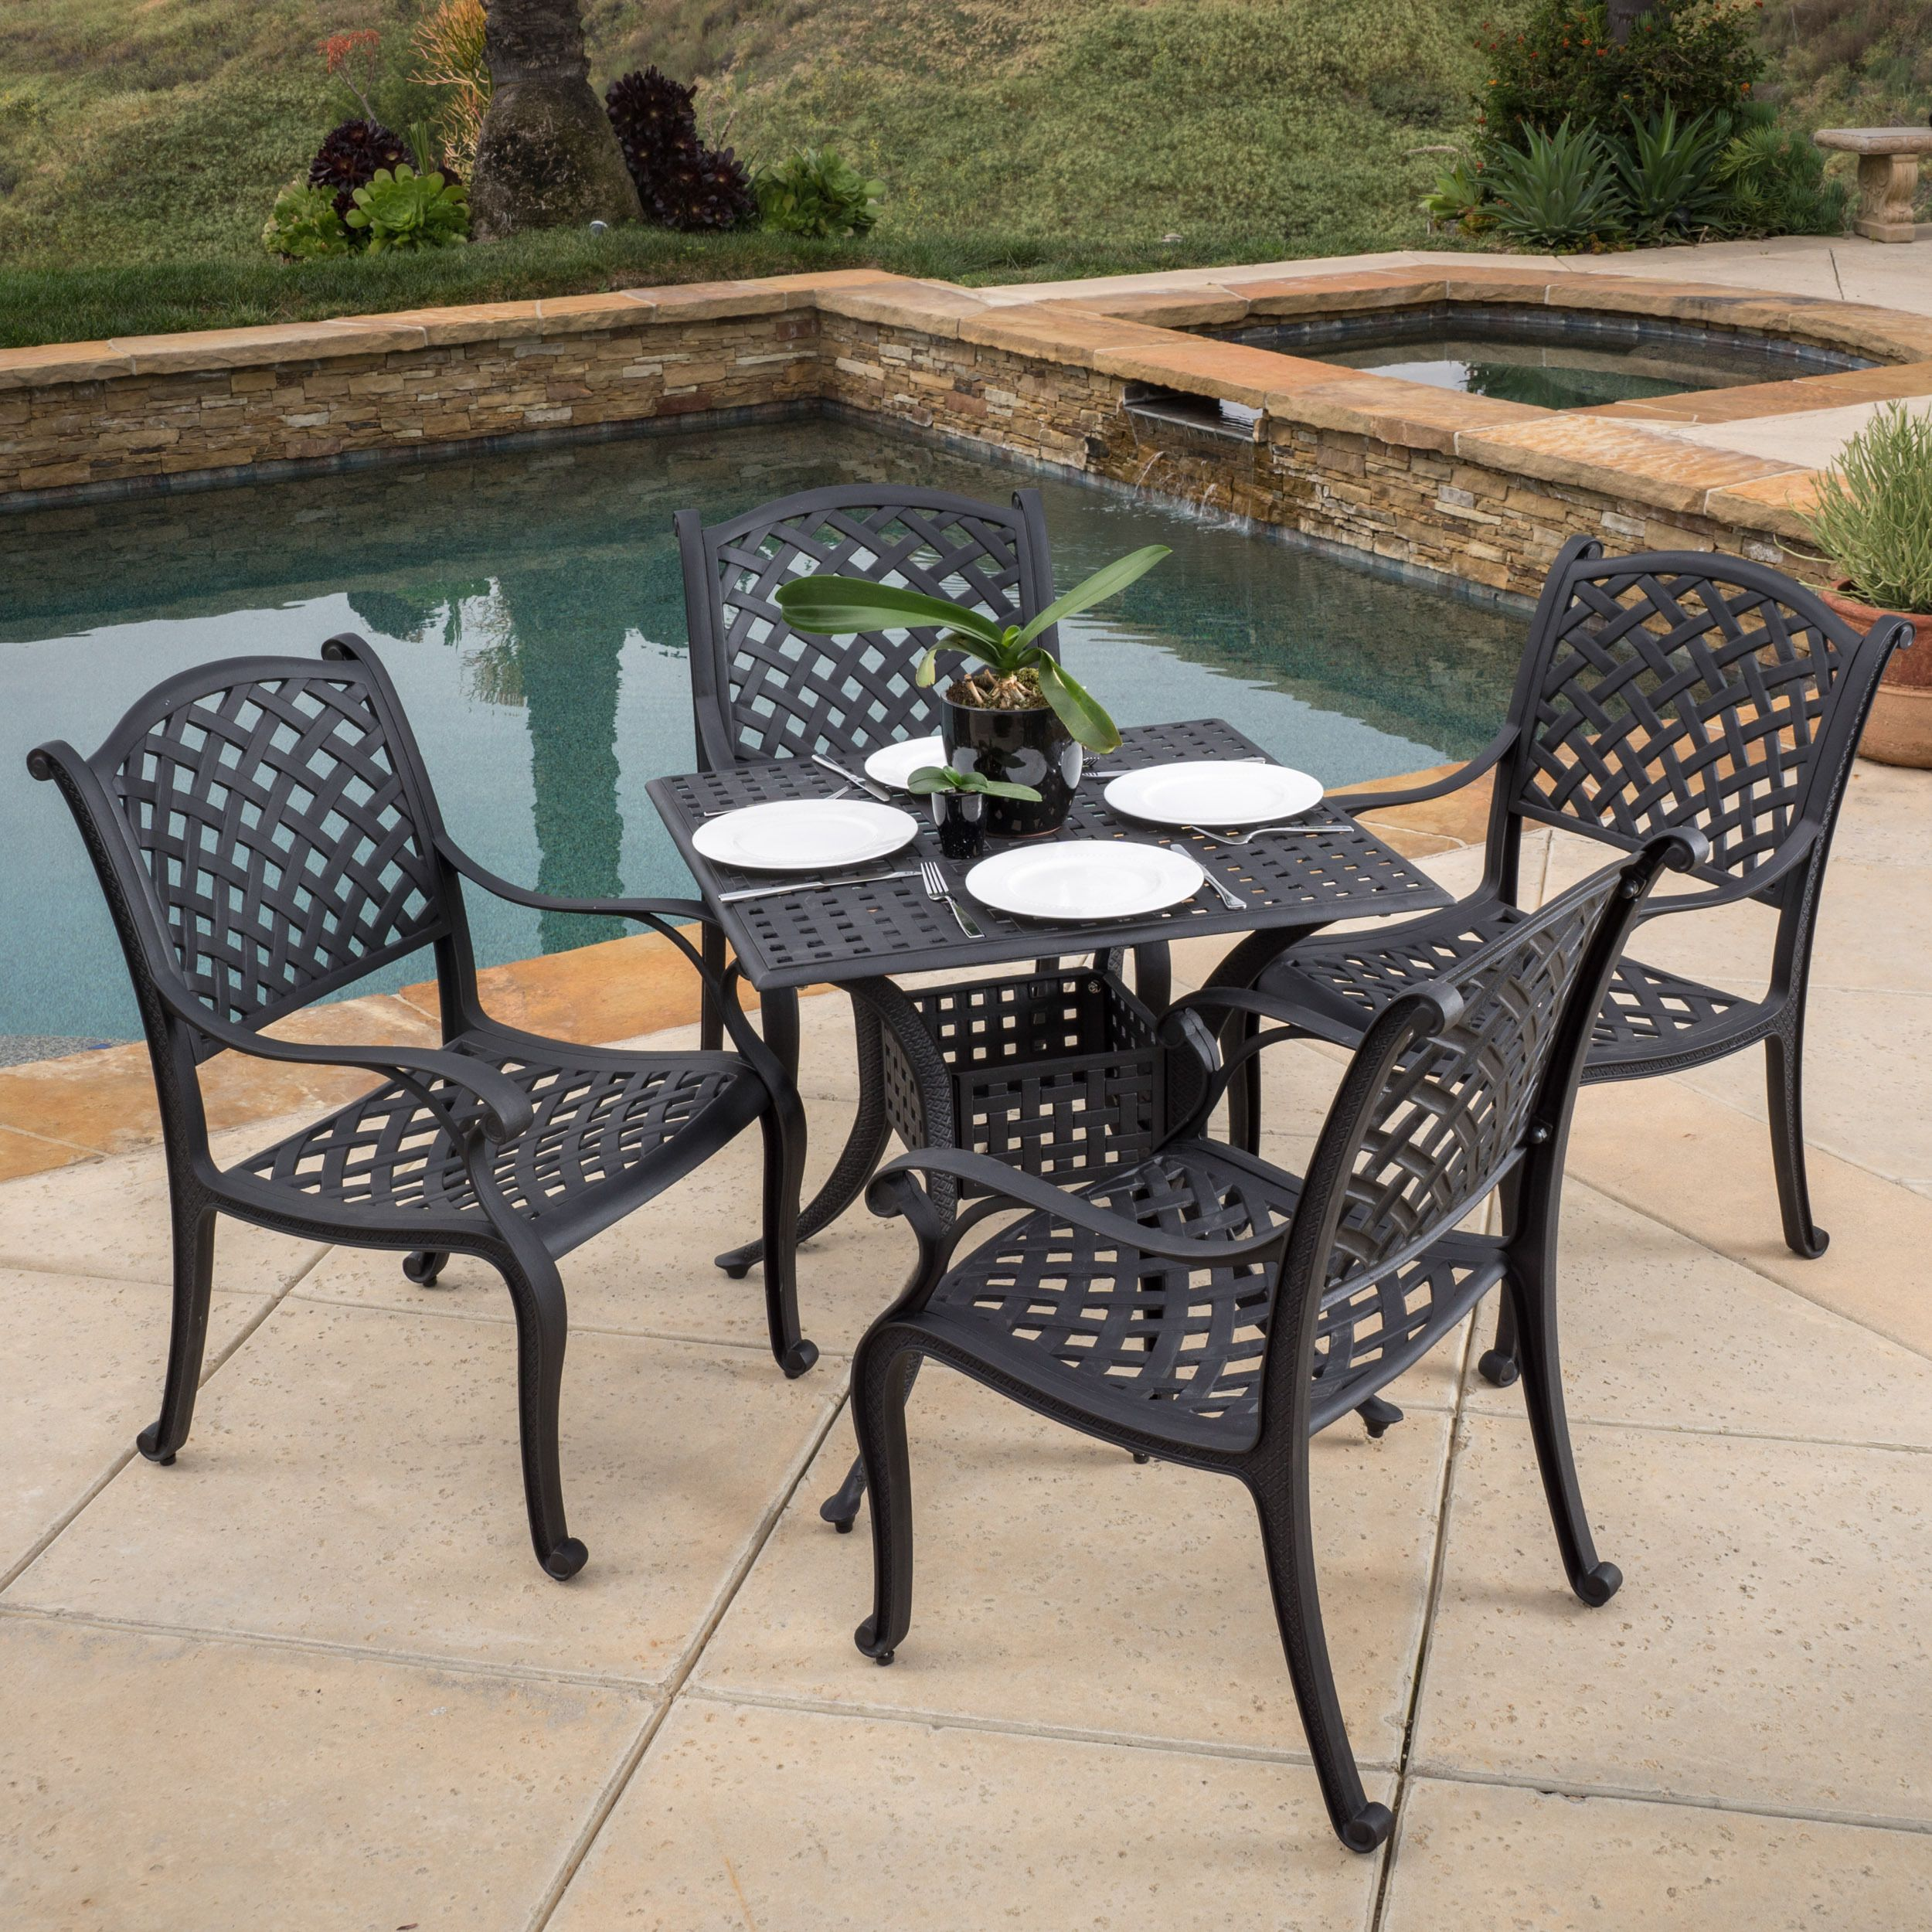 Enjoy the Leandro dining set anywhere in your outdoors. Easily transferable, this set will add style to your outdoors and will remain durable in the outdoor elements.